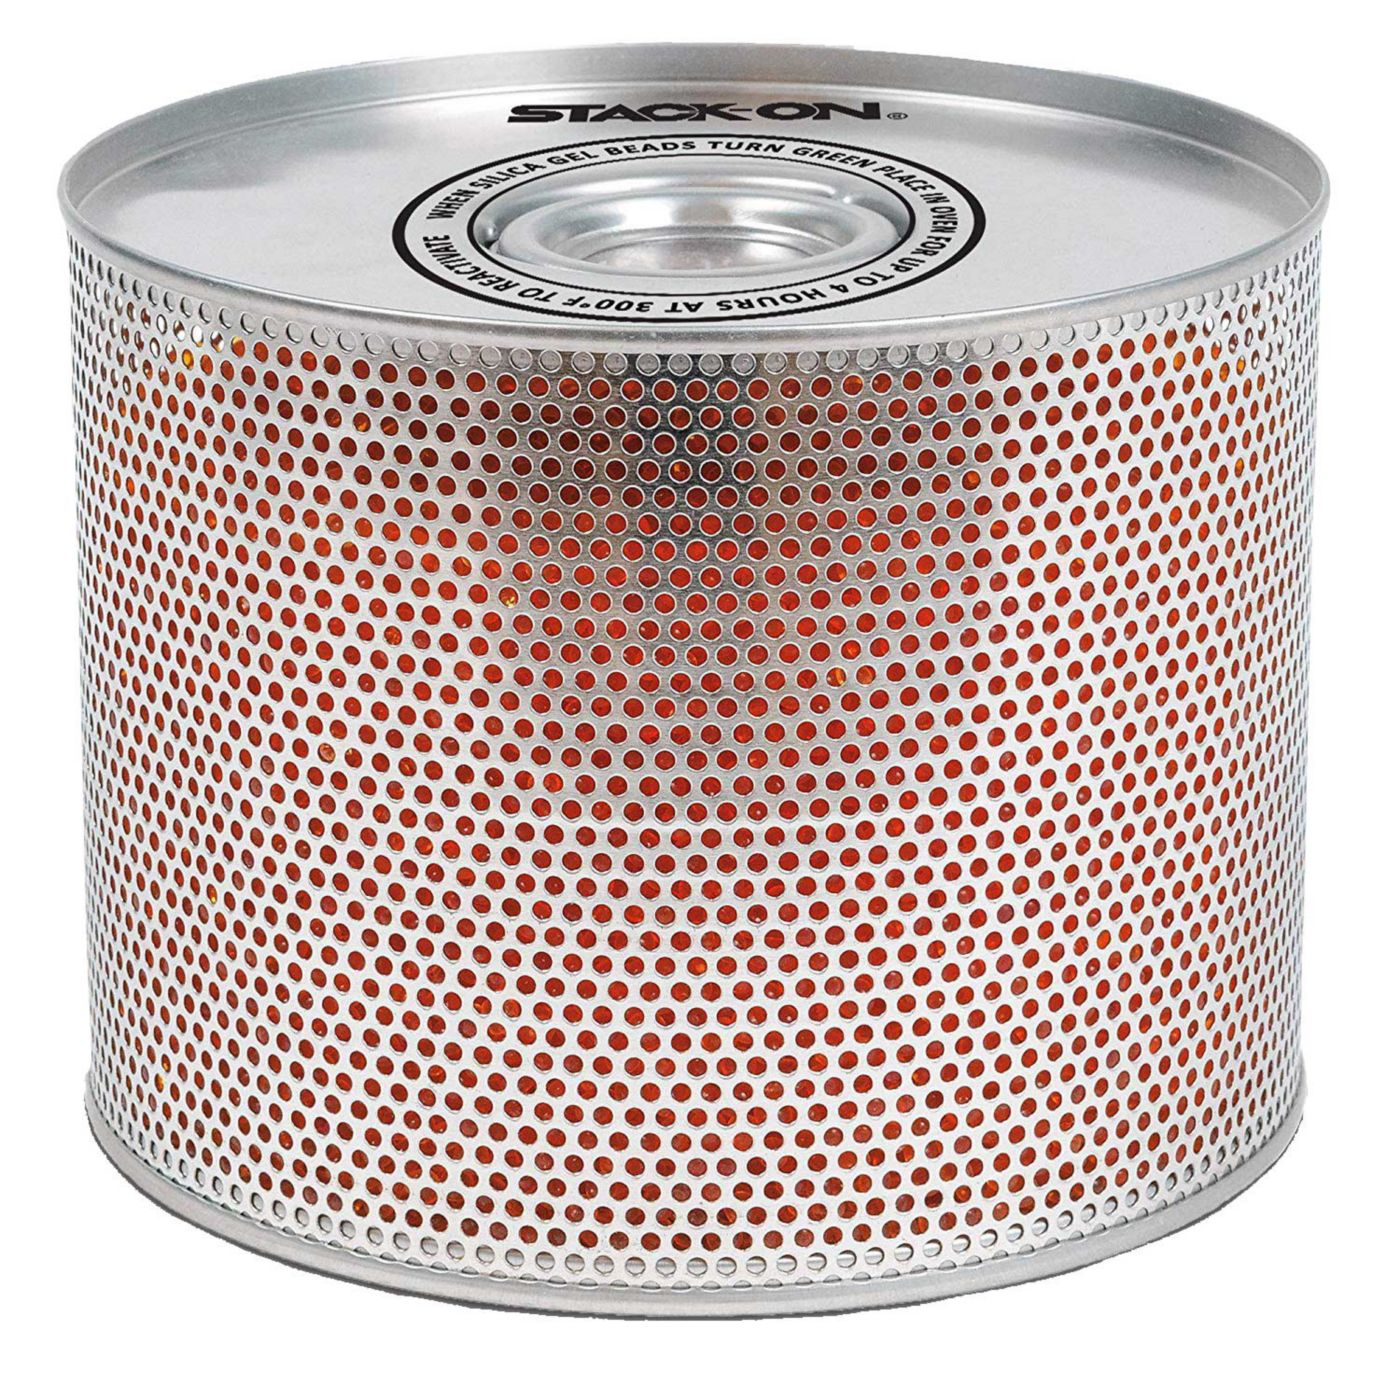 Stack-On Rechargeable Moisture Control Canister